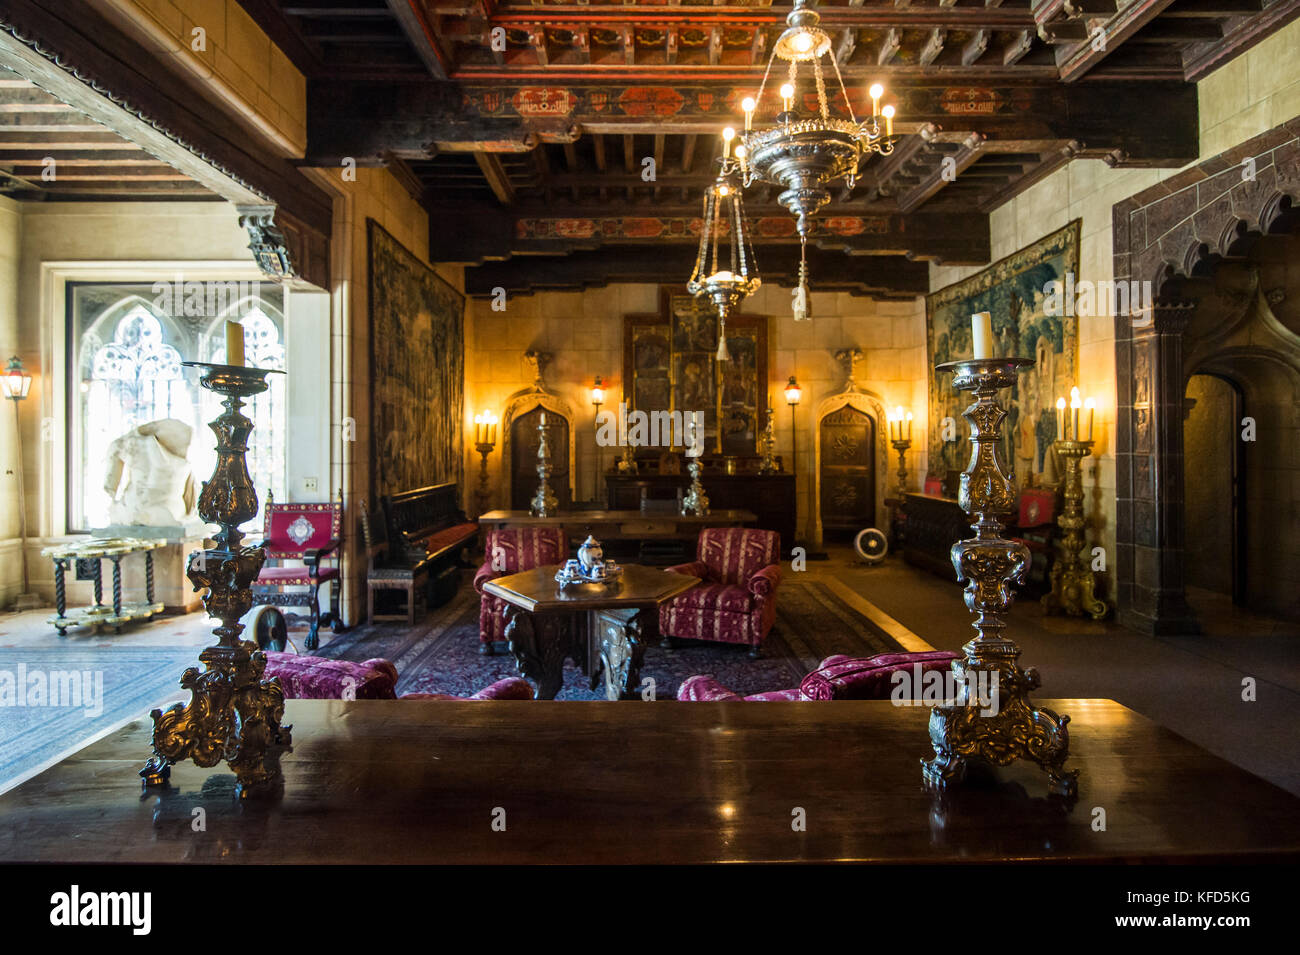 The Interior Luxurious Rooms Of Hearst Castle Big Sur California USA